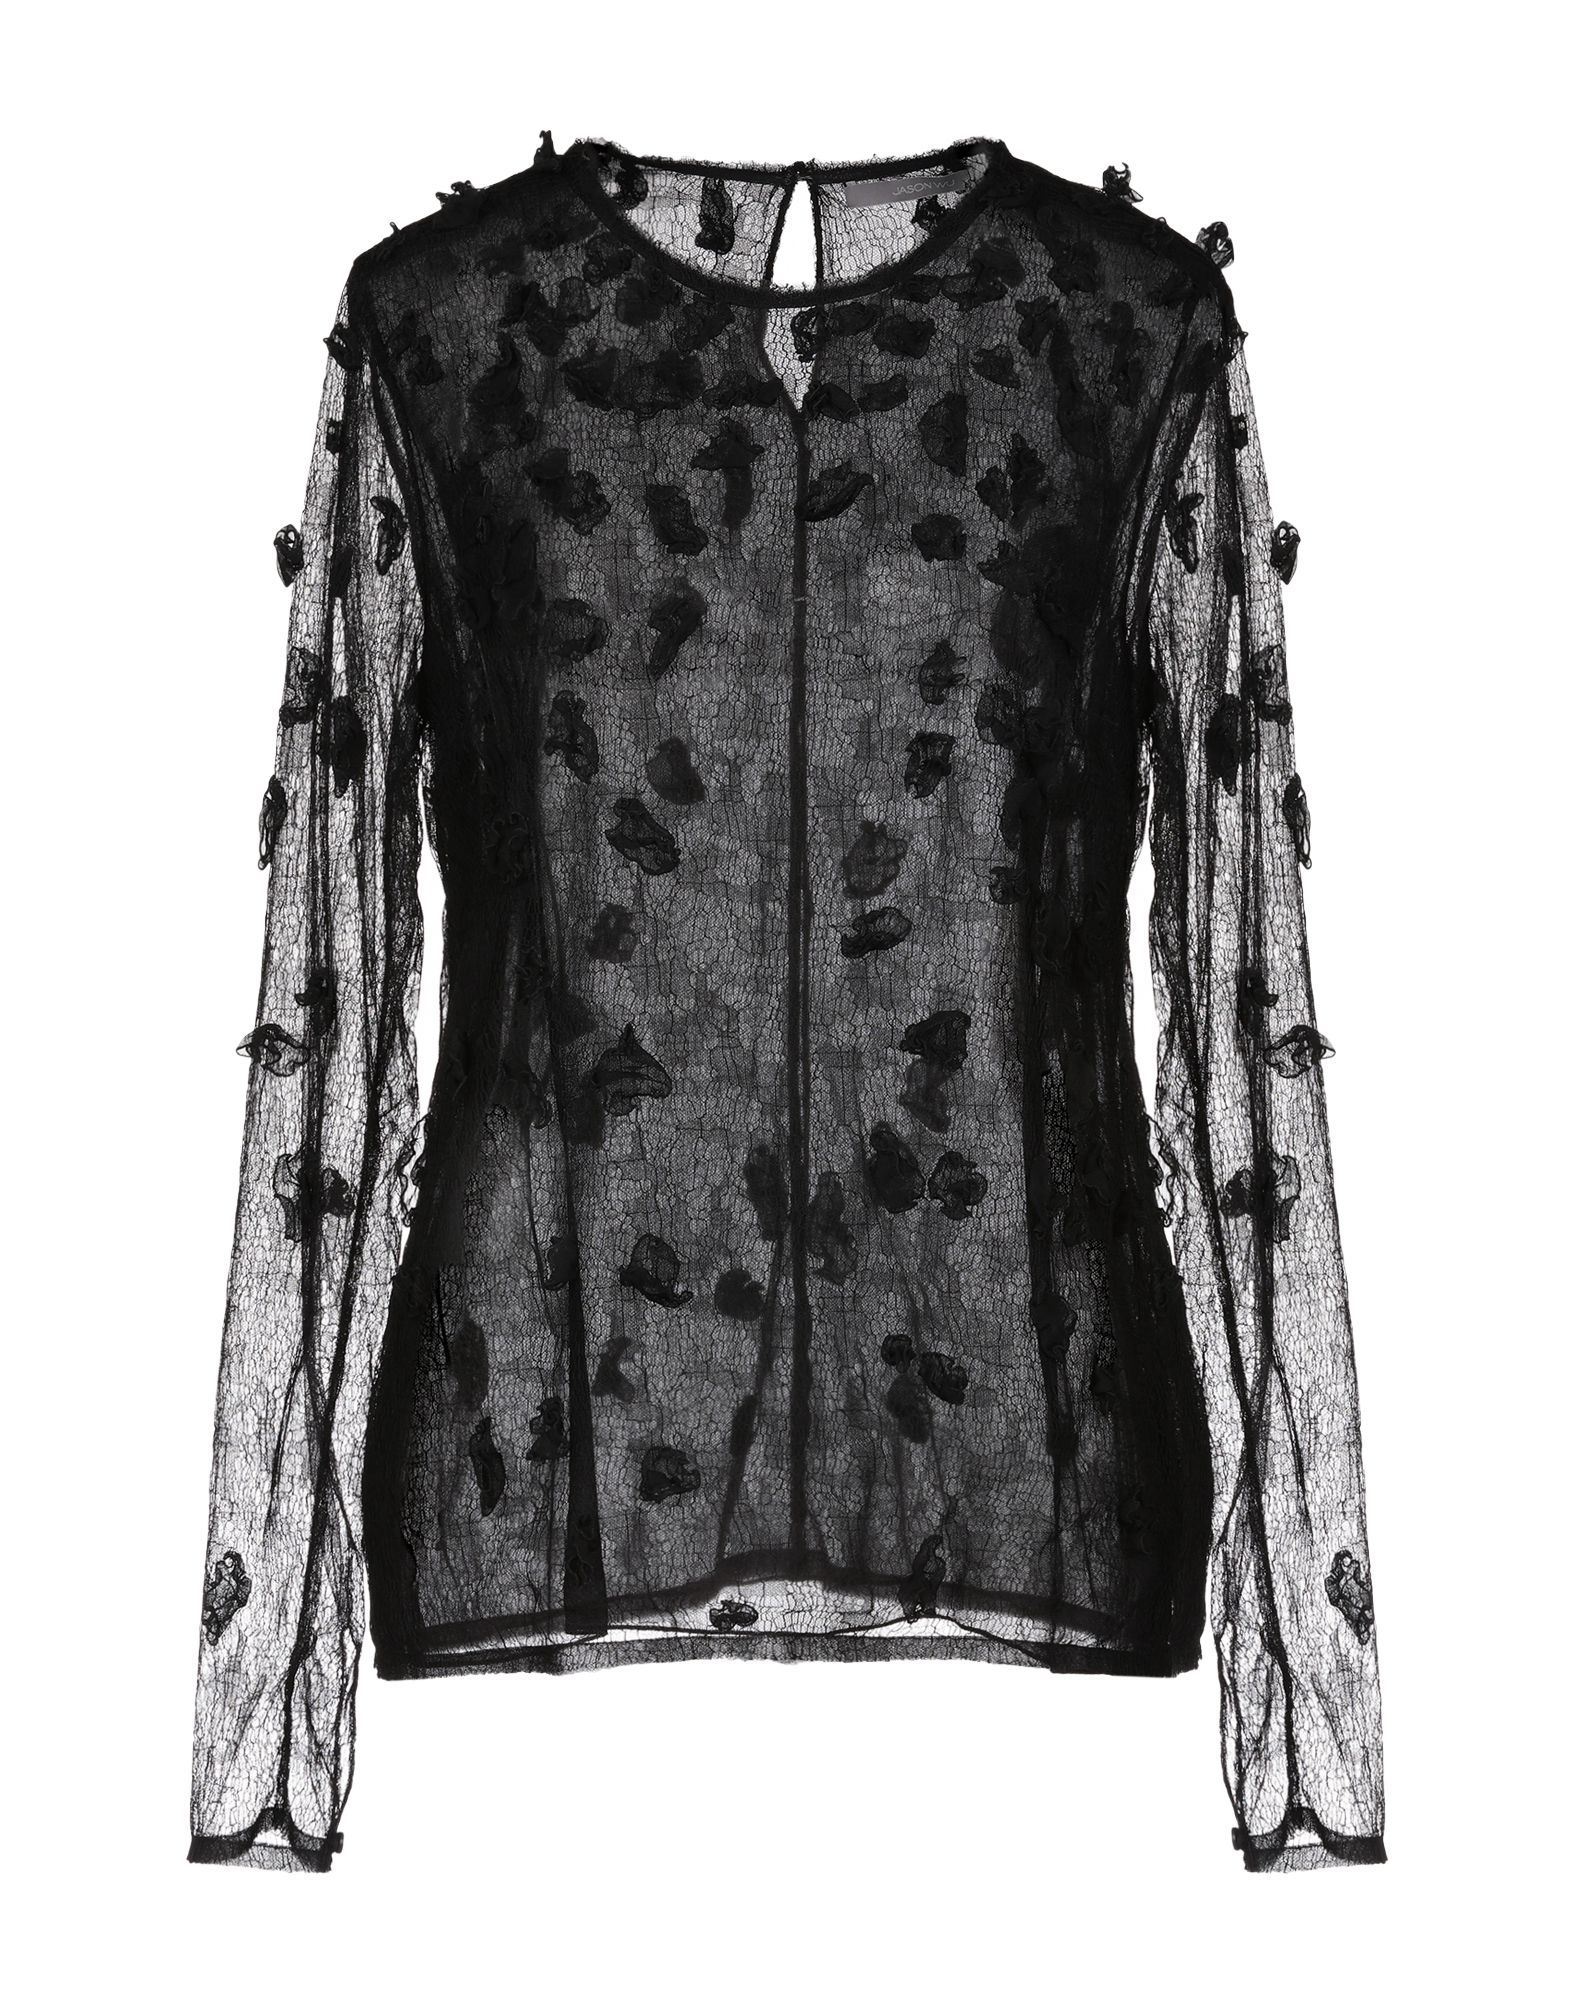 Jason Wu Light Grey Flower Detail Blouse